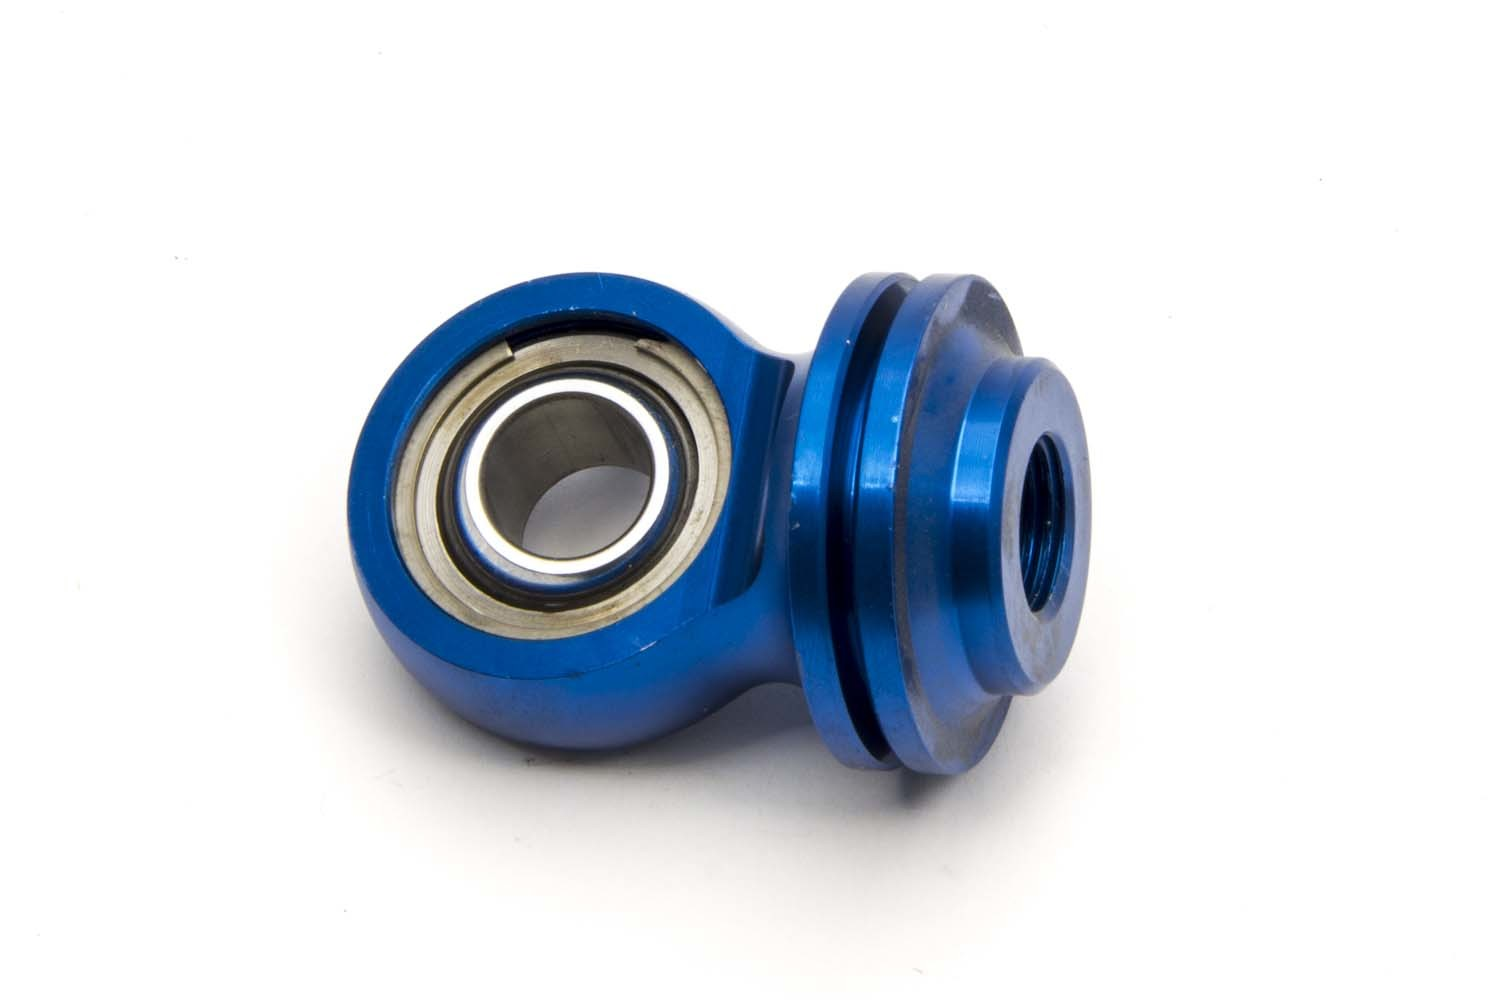 AFCO Racing Products 1004 Shock End, Spherical, Standard, Aluminum, Blue Anodize, 11/13 Series, Each